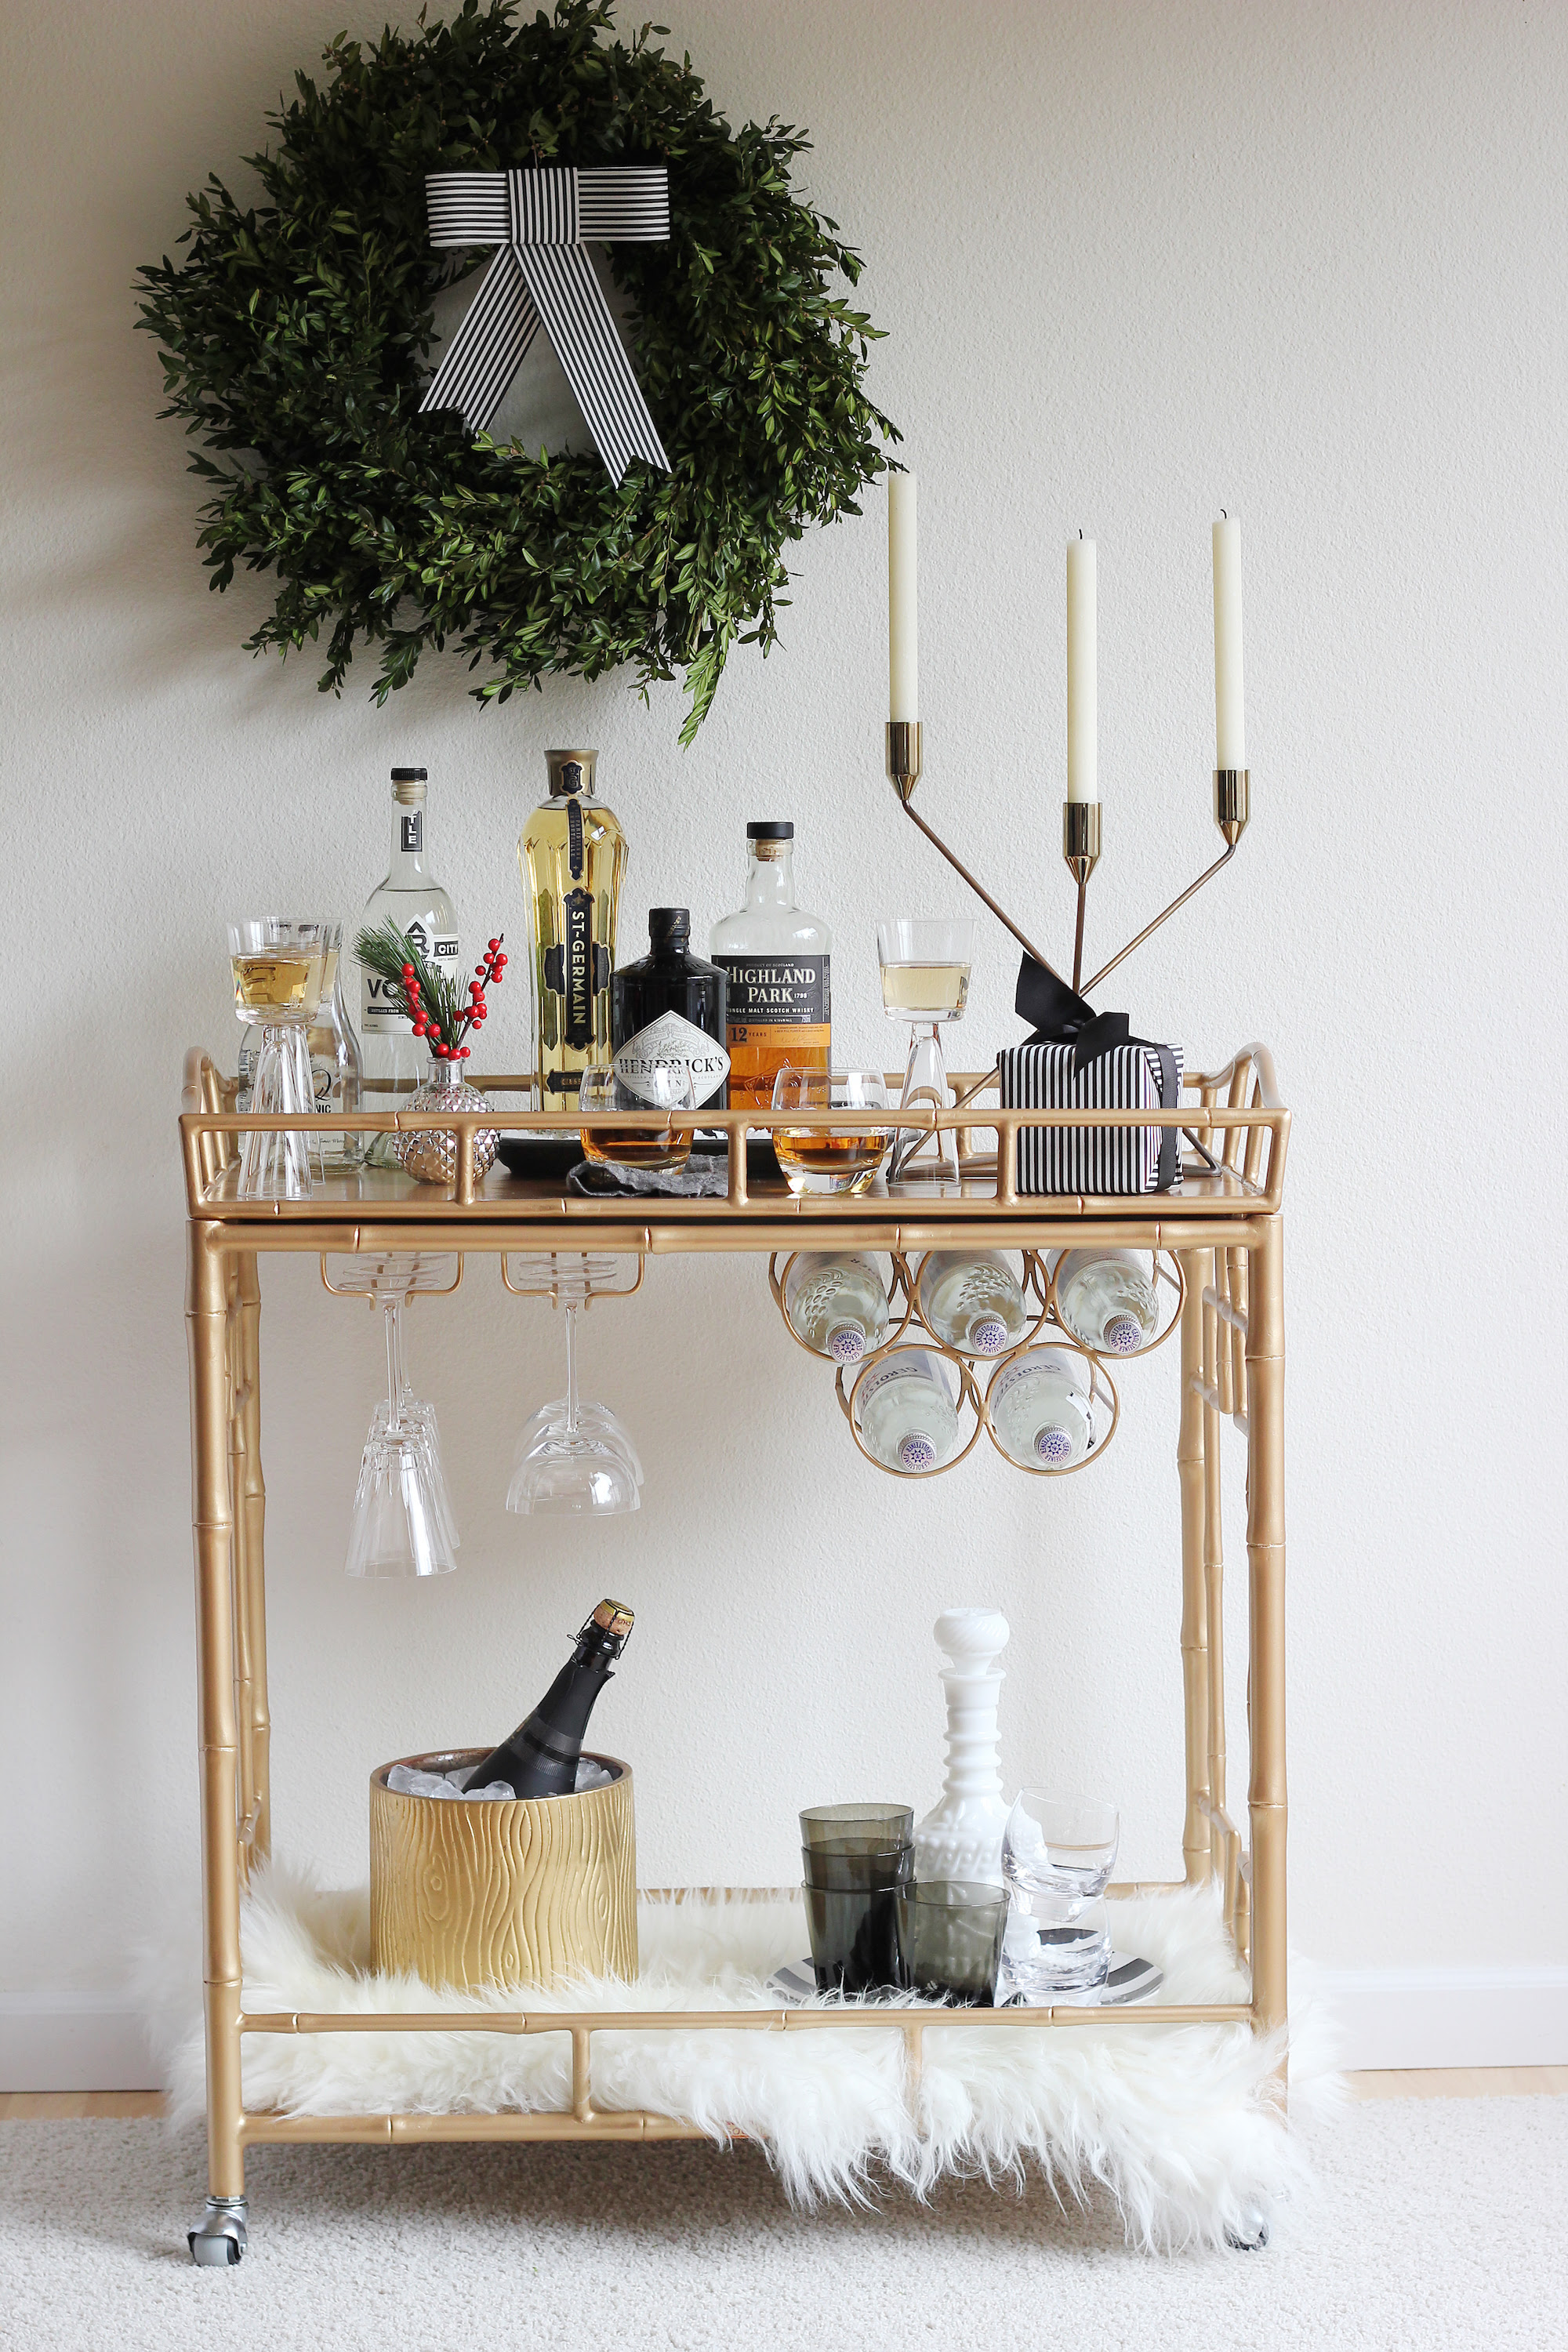 20 Best Holiday Decorating Ideas For Small Spaces ...